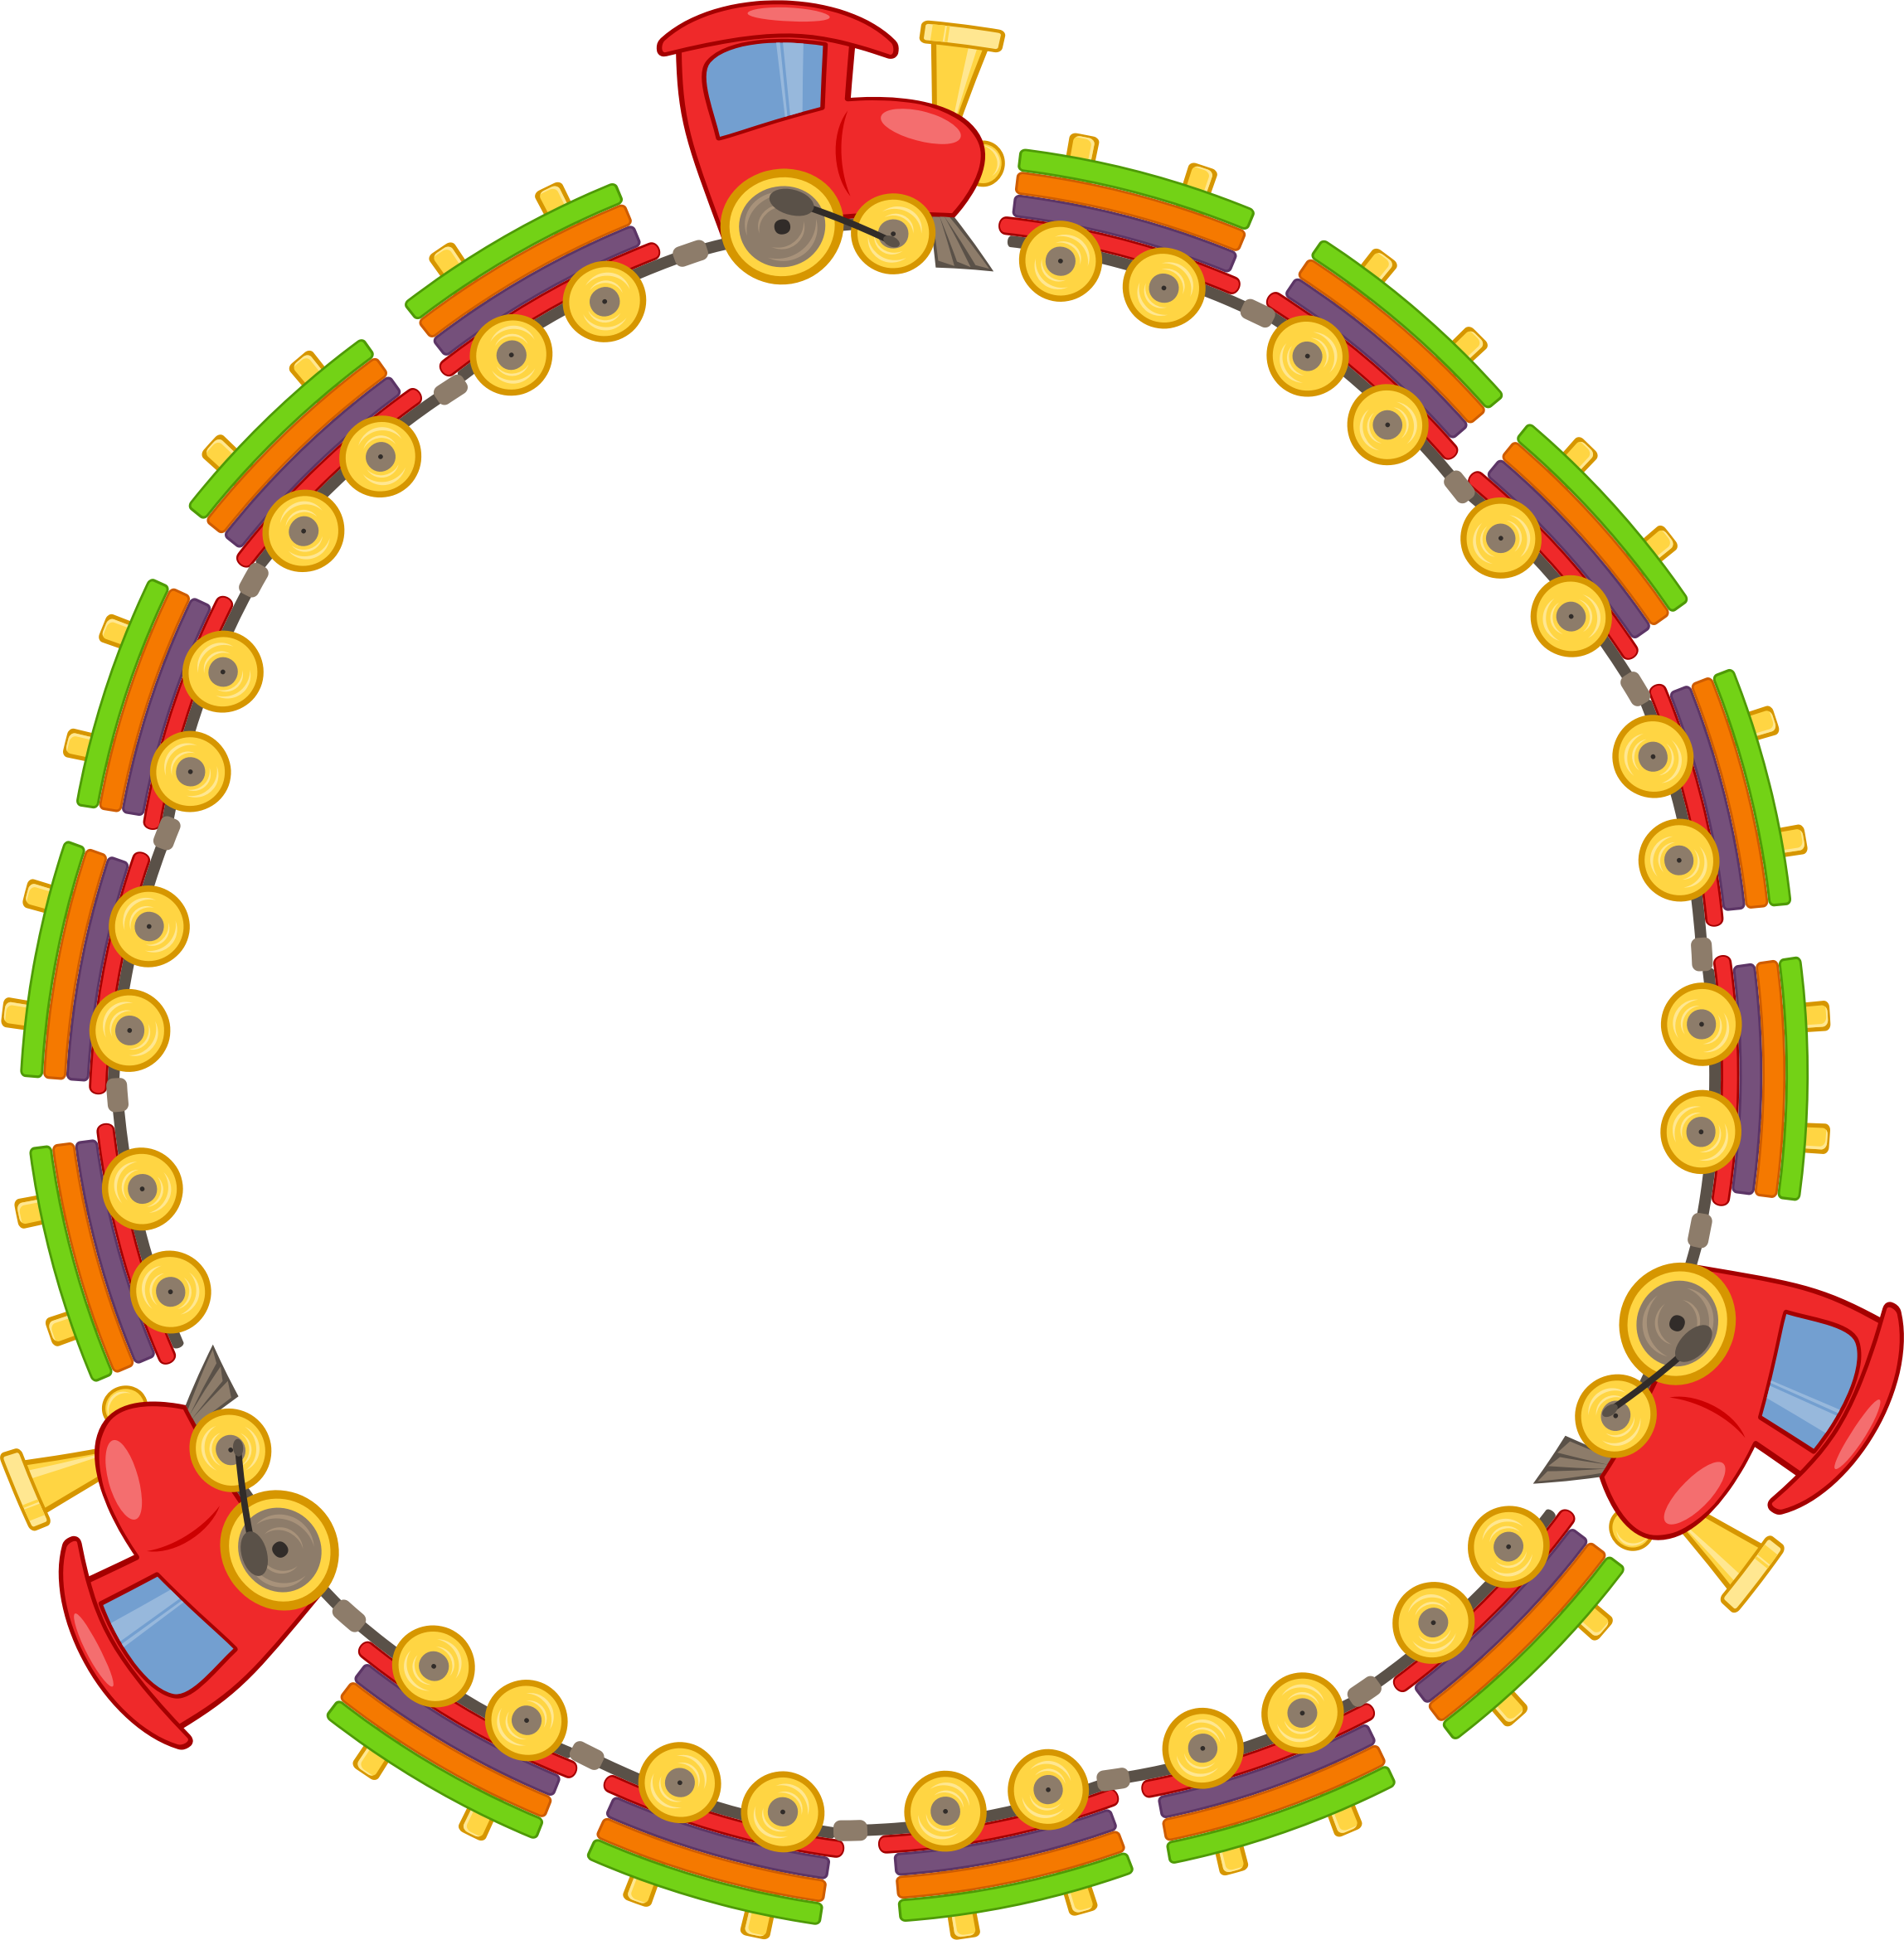 Train big image png. Frame clipart toy picture free stock